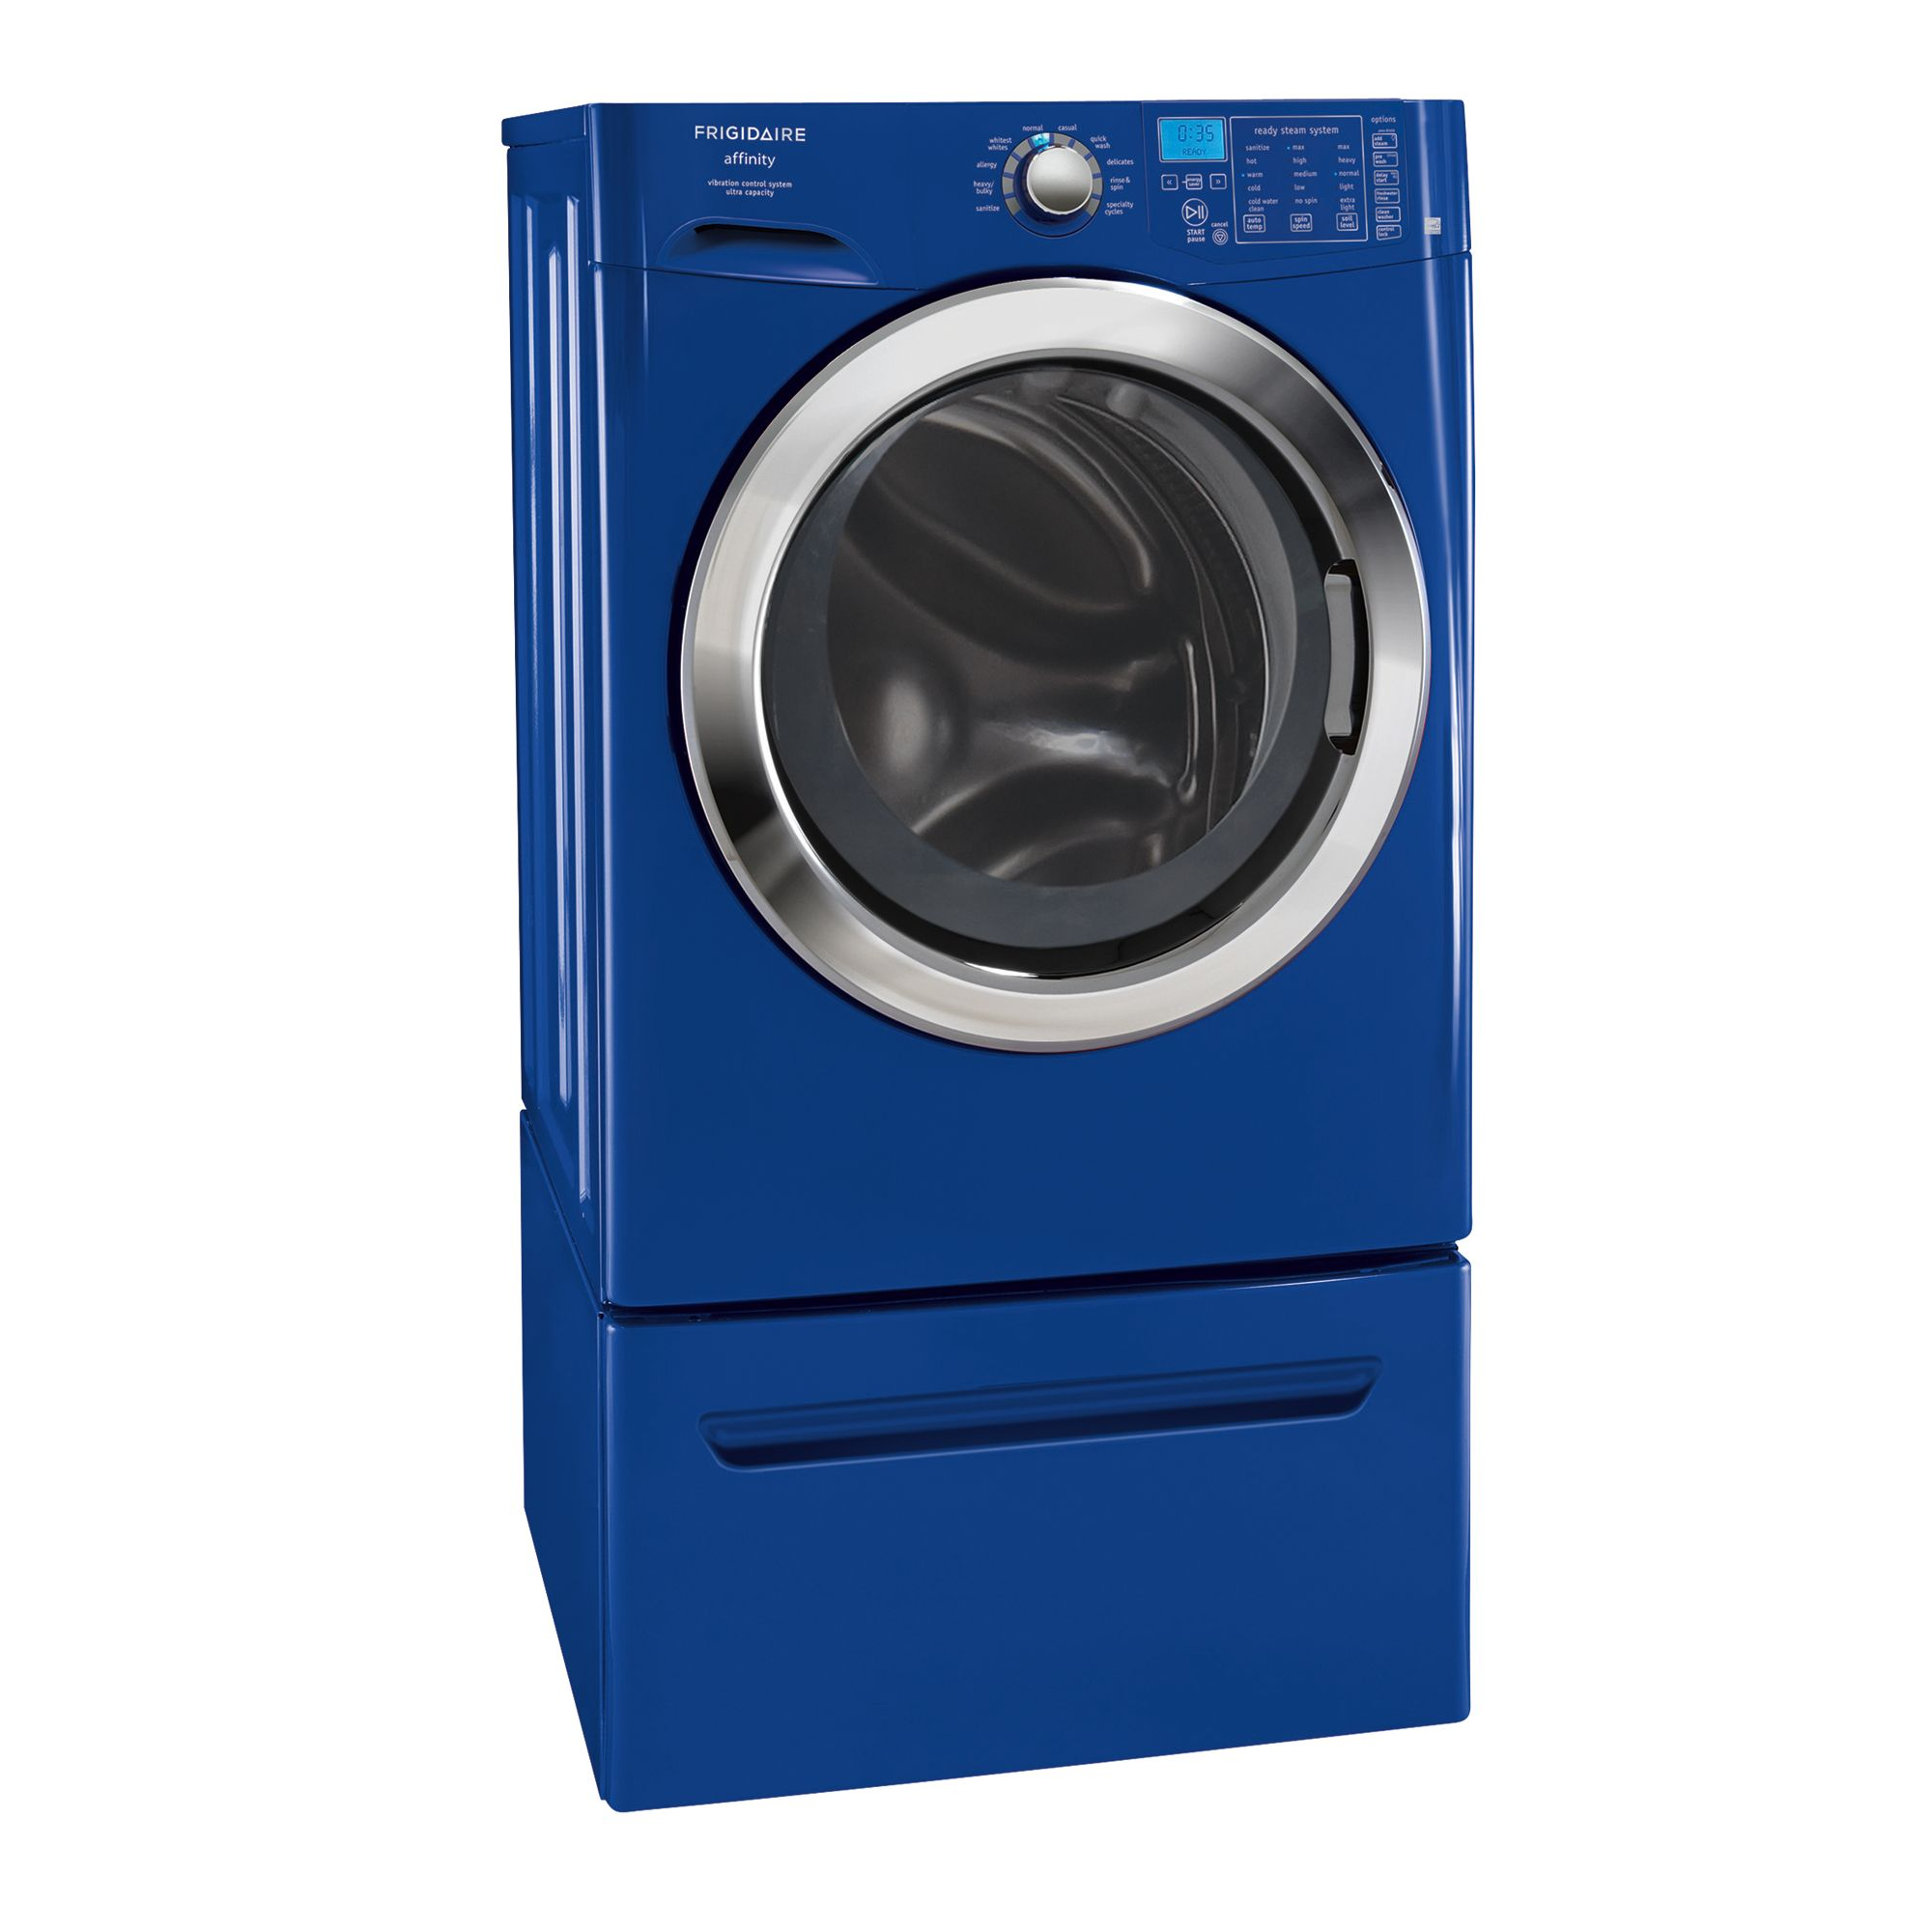 Frigidaire Affinity Front-load Steam Washing Machine 3.8 cubic feet